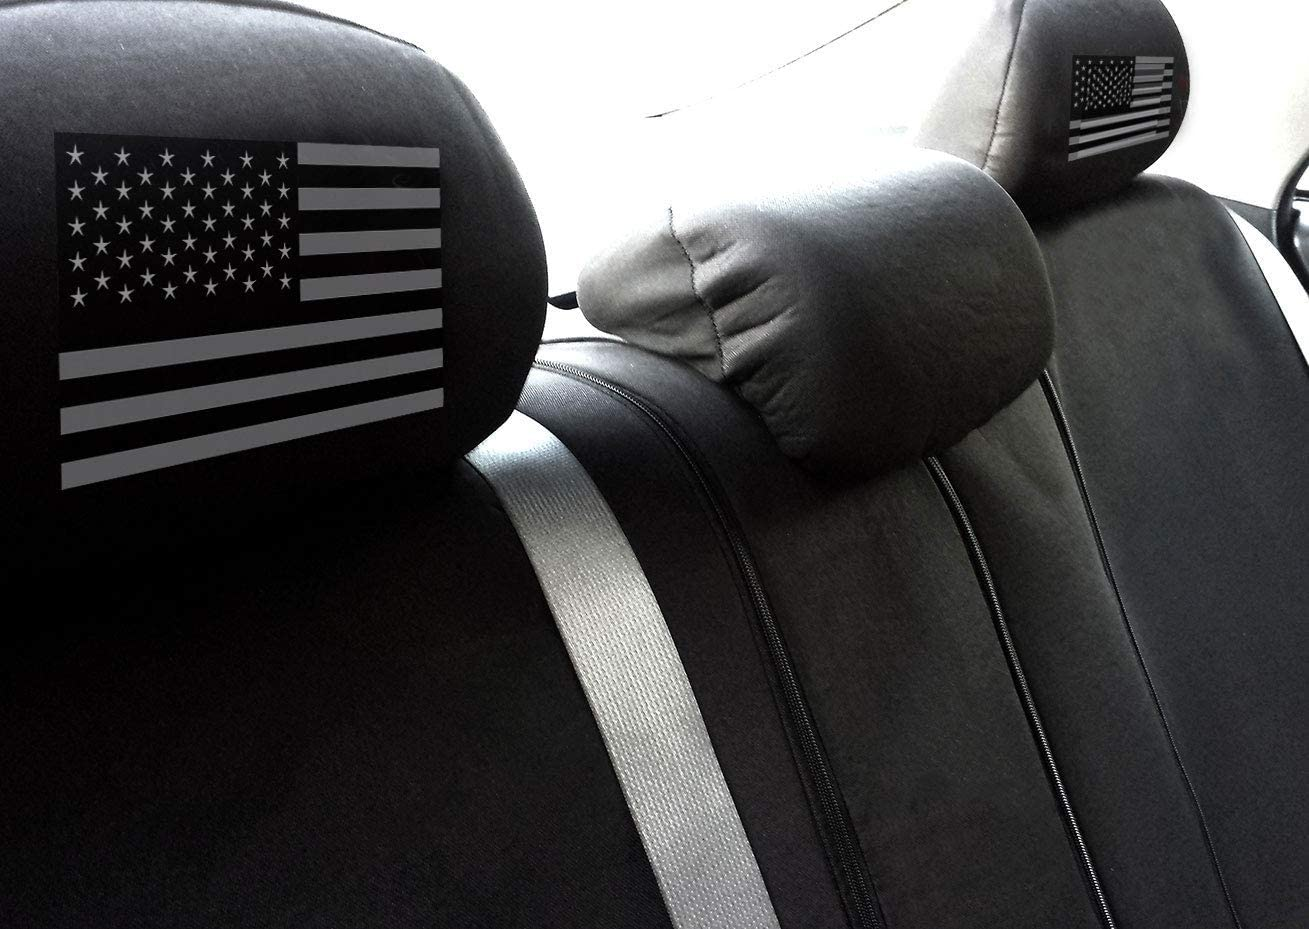 Car Truck SUV Seat Headrest Cover American Flag Design New Universal Size Black